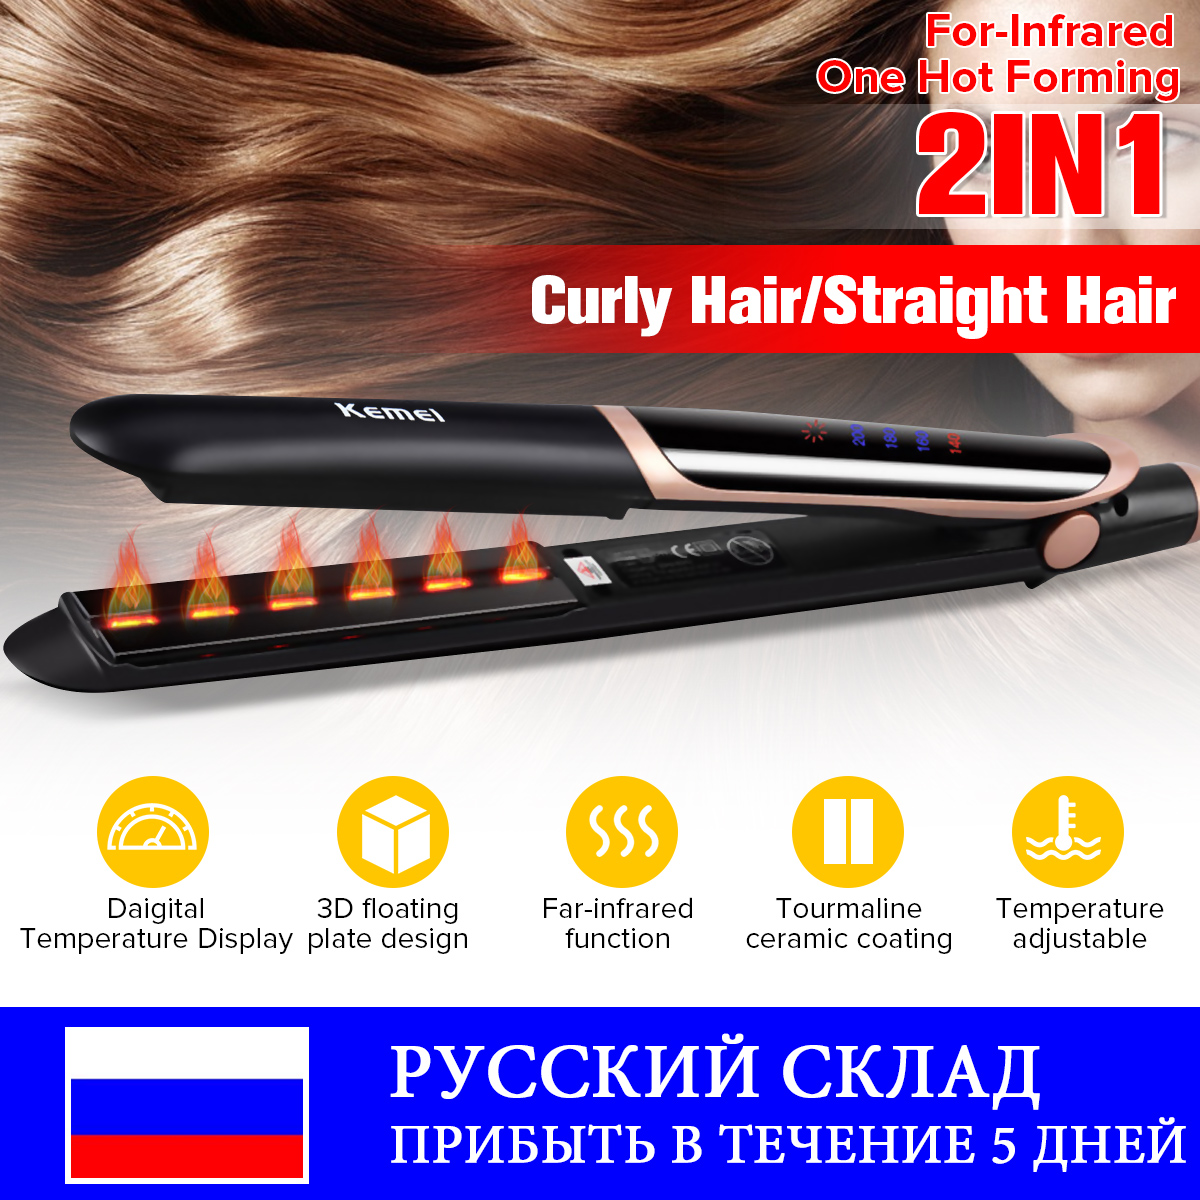 Kemei 2 in1 Professional Hair Straightener Curler Hair Flat Iron Negative Ion Infrared Hair Straighting Curling Iron CorrugationKemei 2 in1 Professional Hair Straightener Curler Hair Flat Iron Negative Ion Infrared Hair Straighting Curling Iron Corrugation